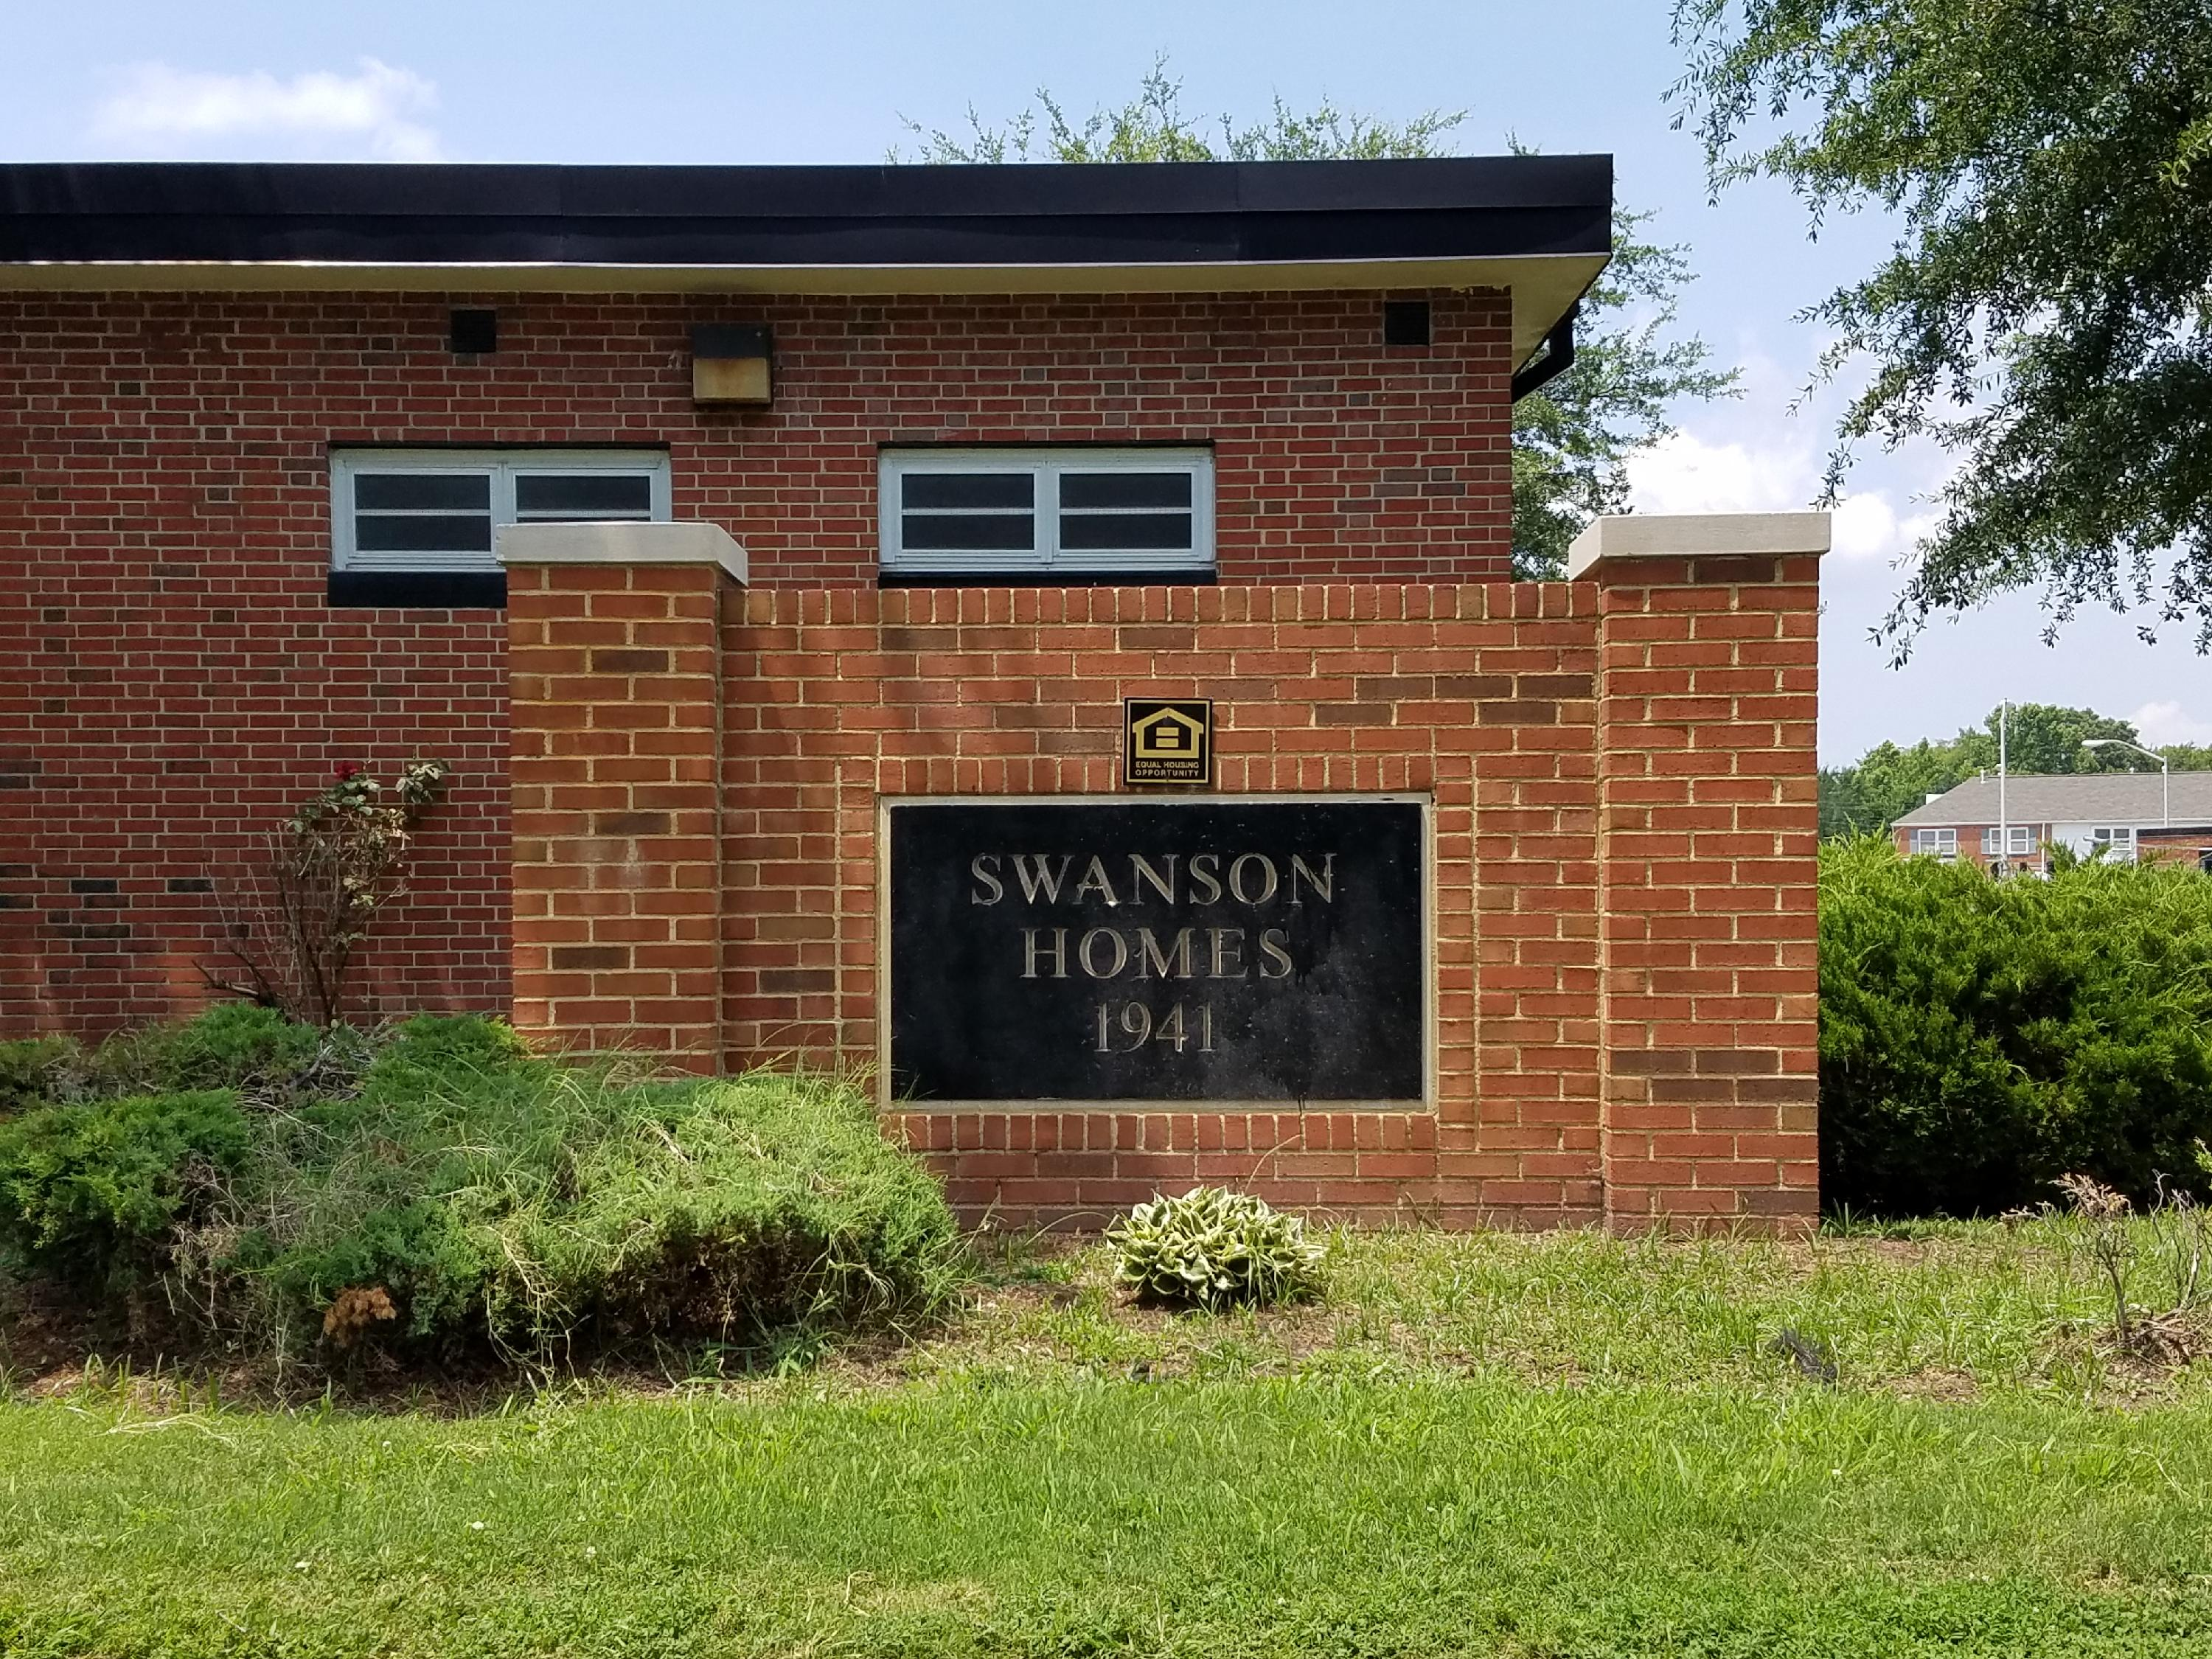 Image of Swanson Homes in Portsmouth, Virginia